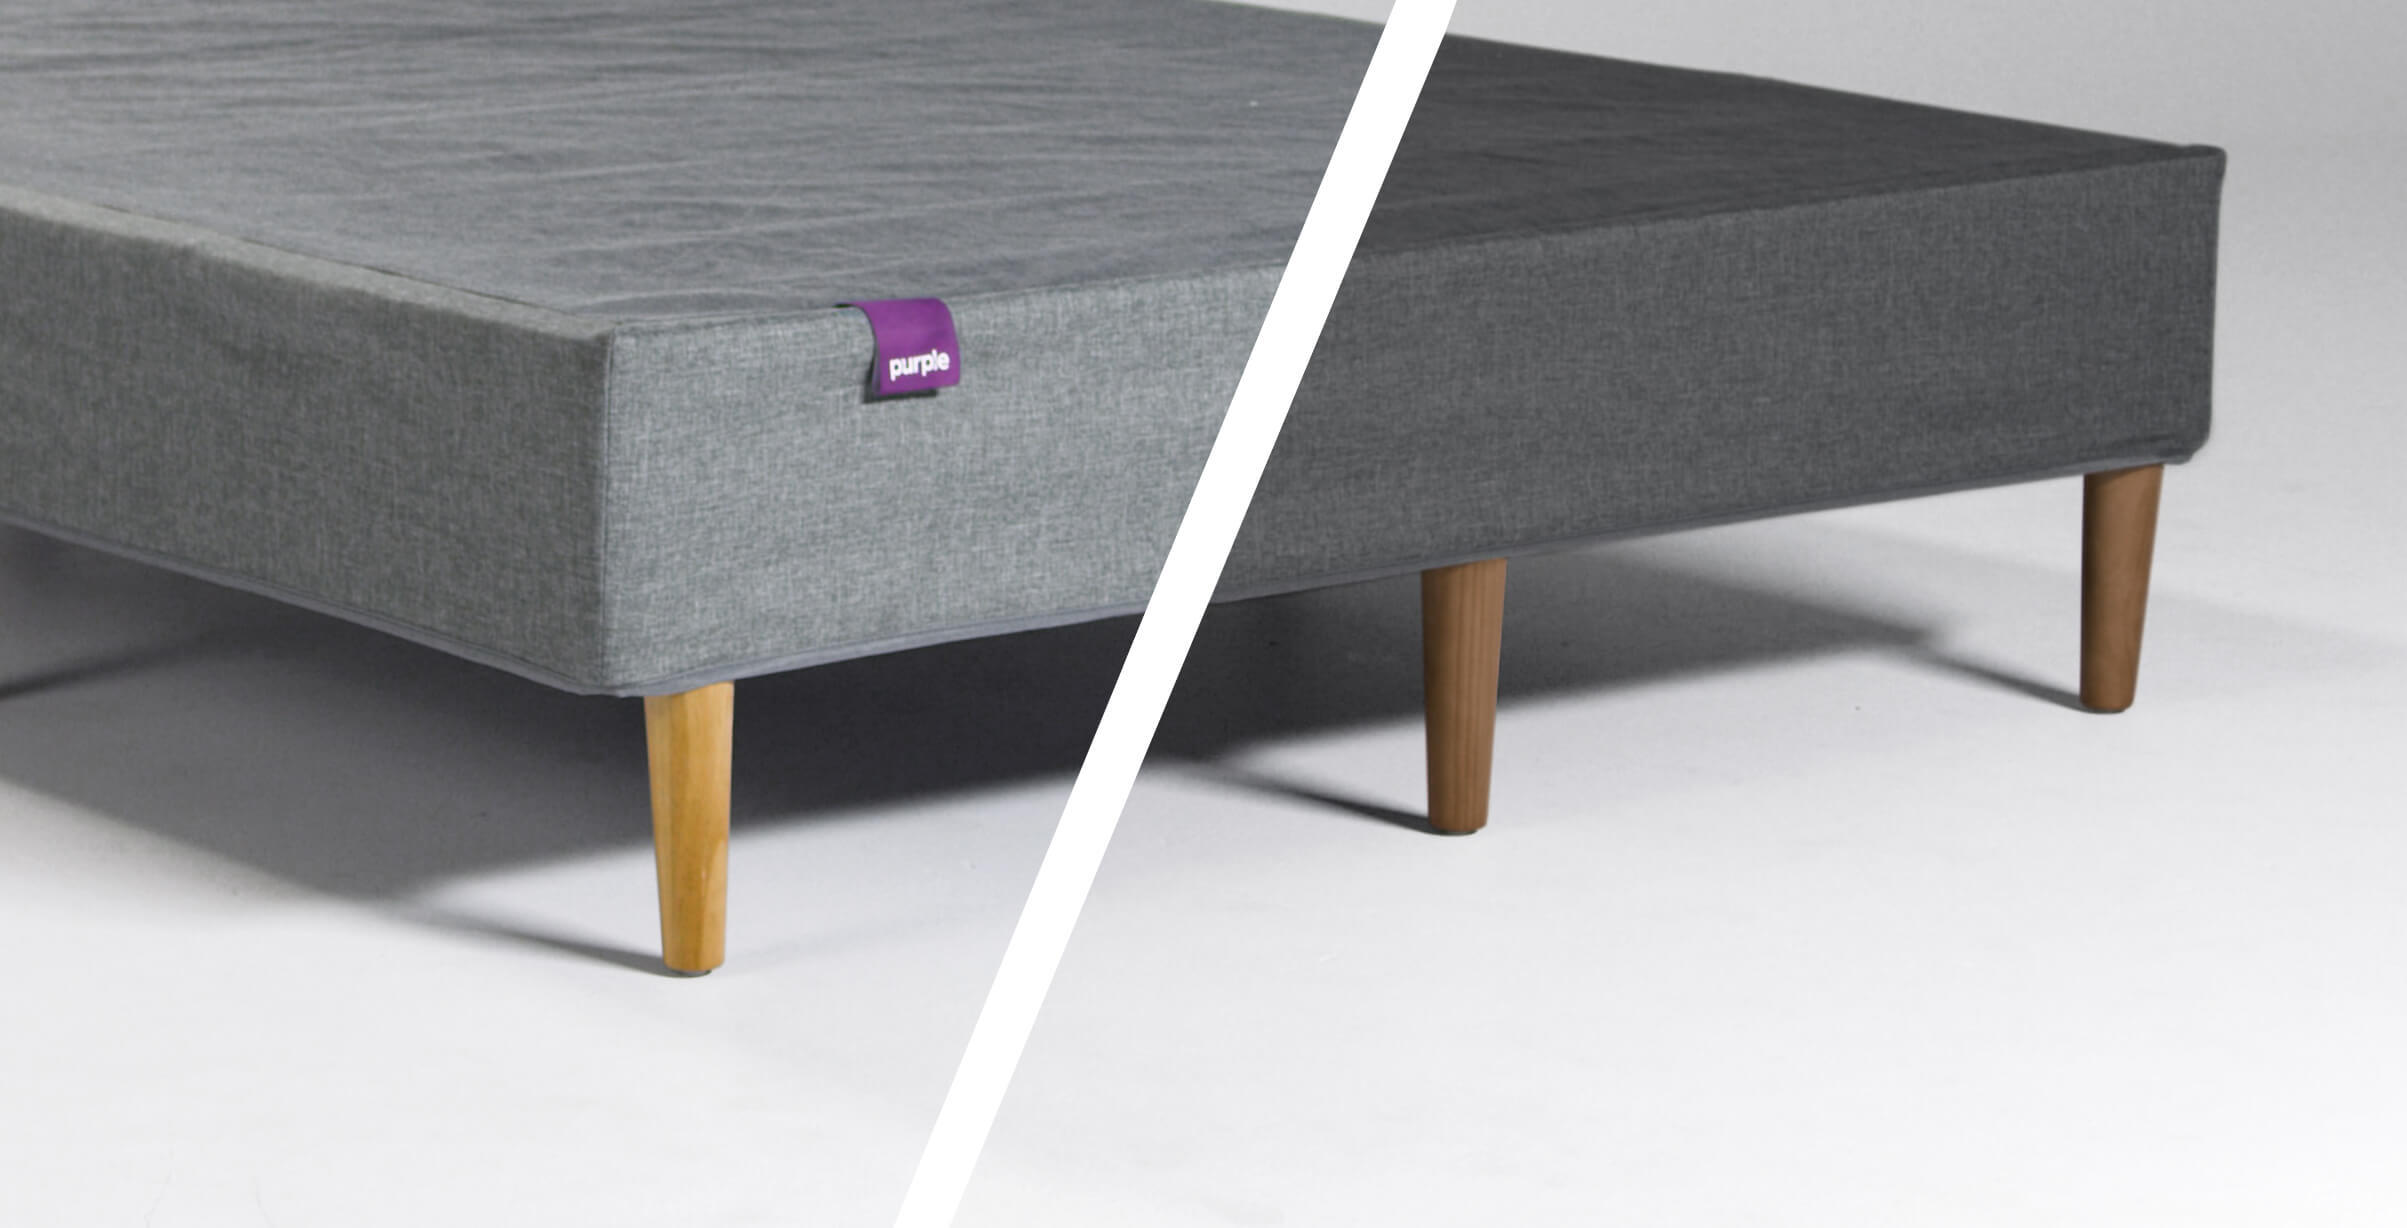 7 Best Bed Frames Foundations For Purple Mattress 2020